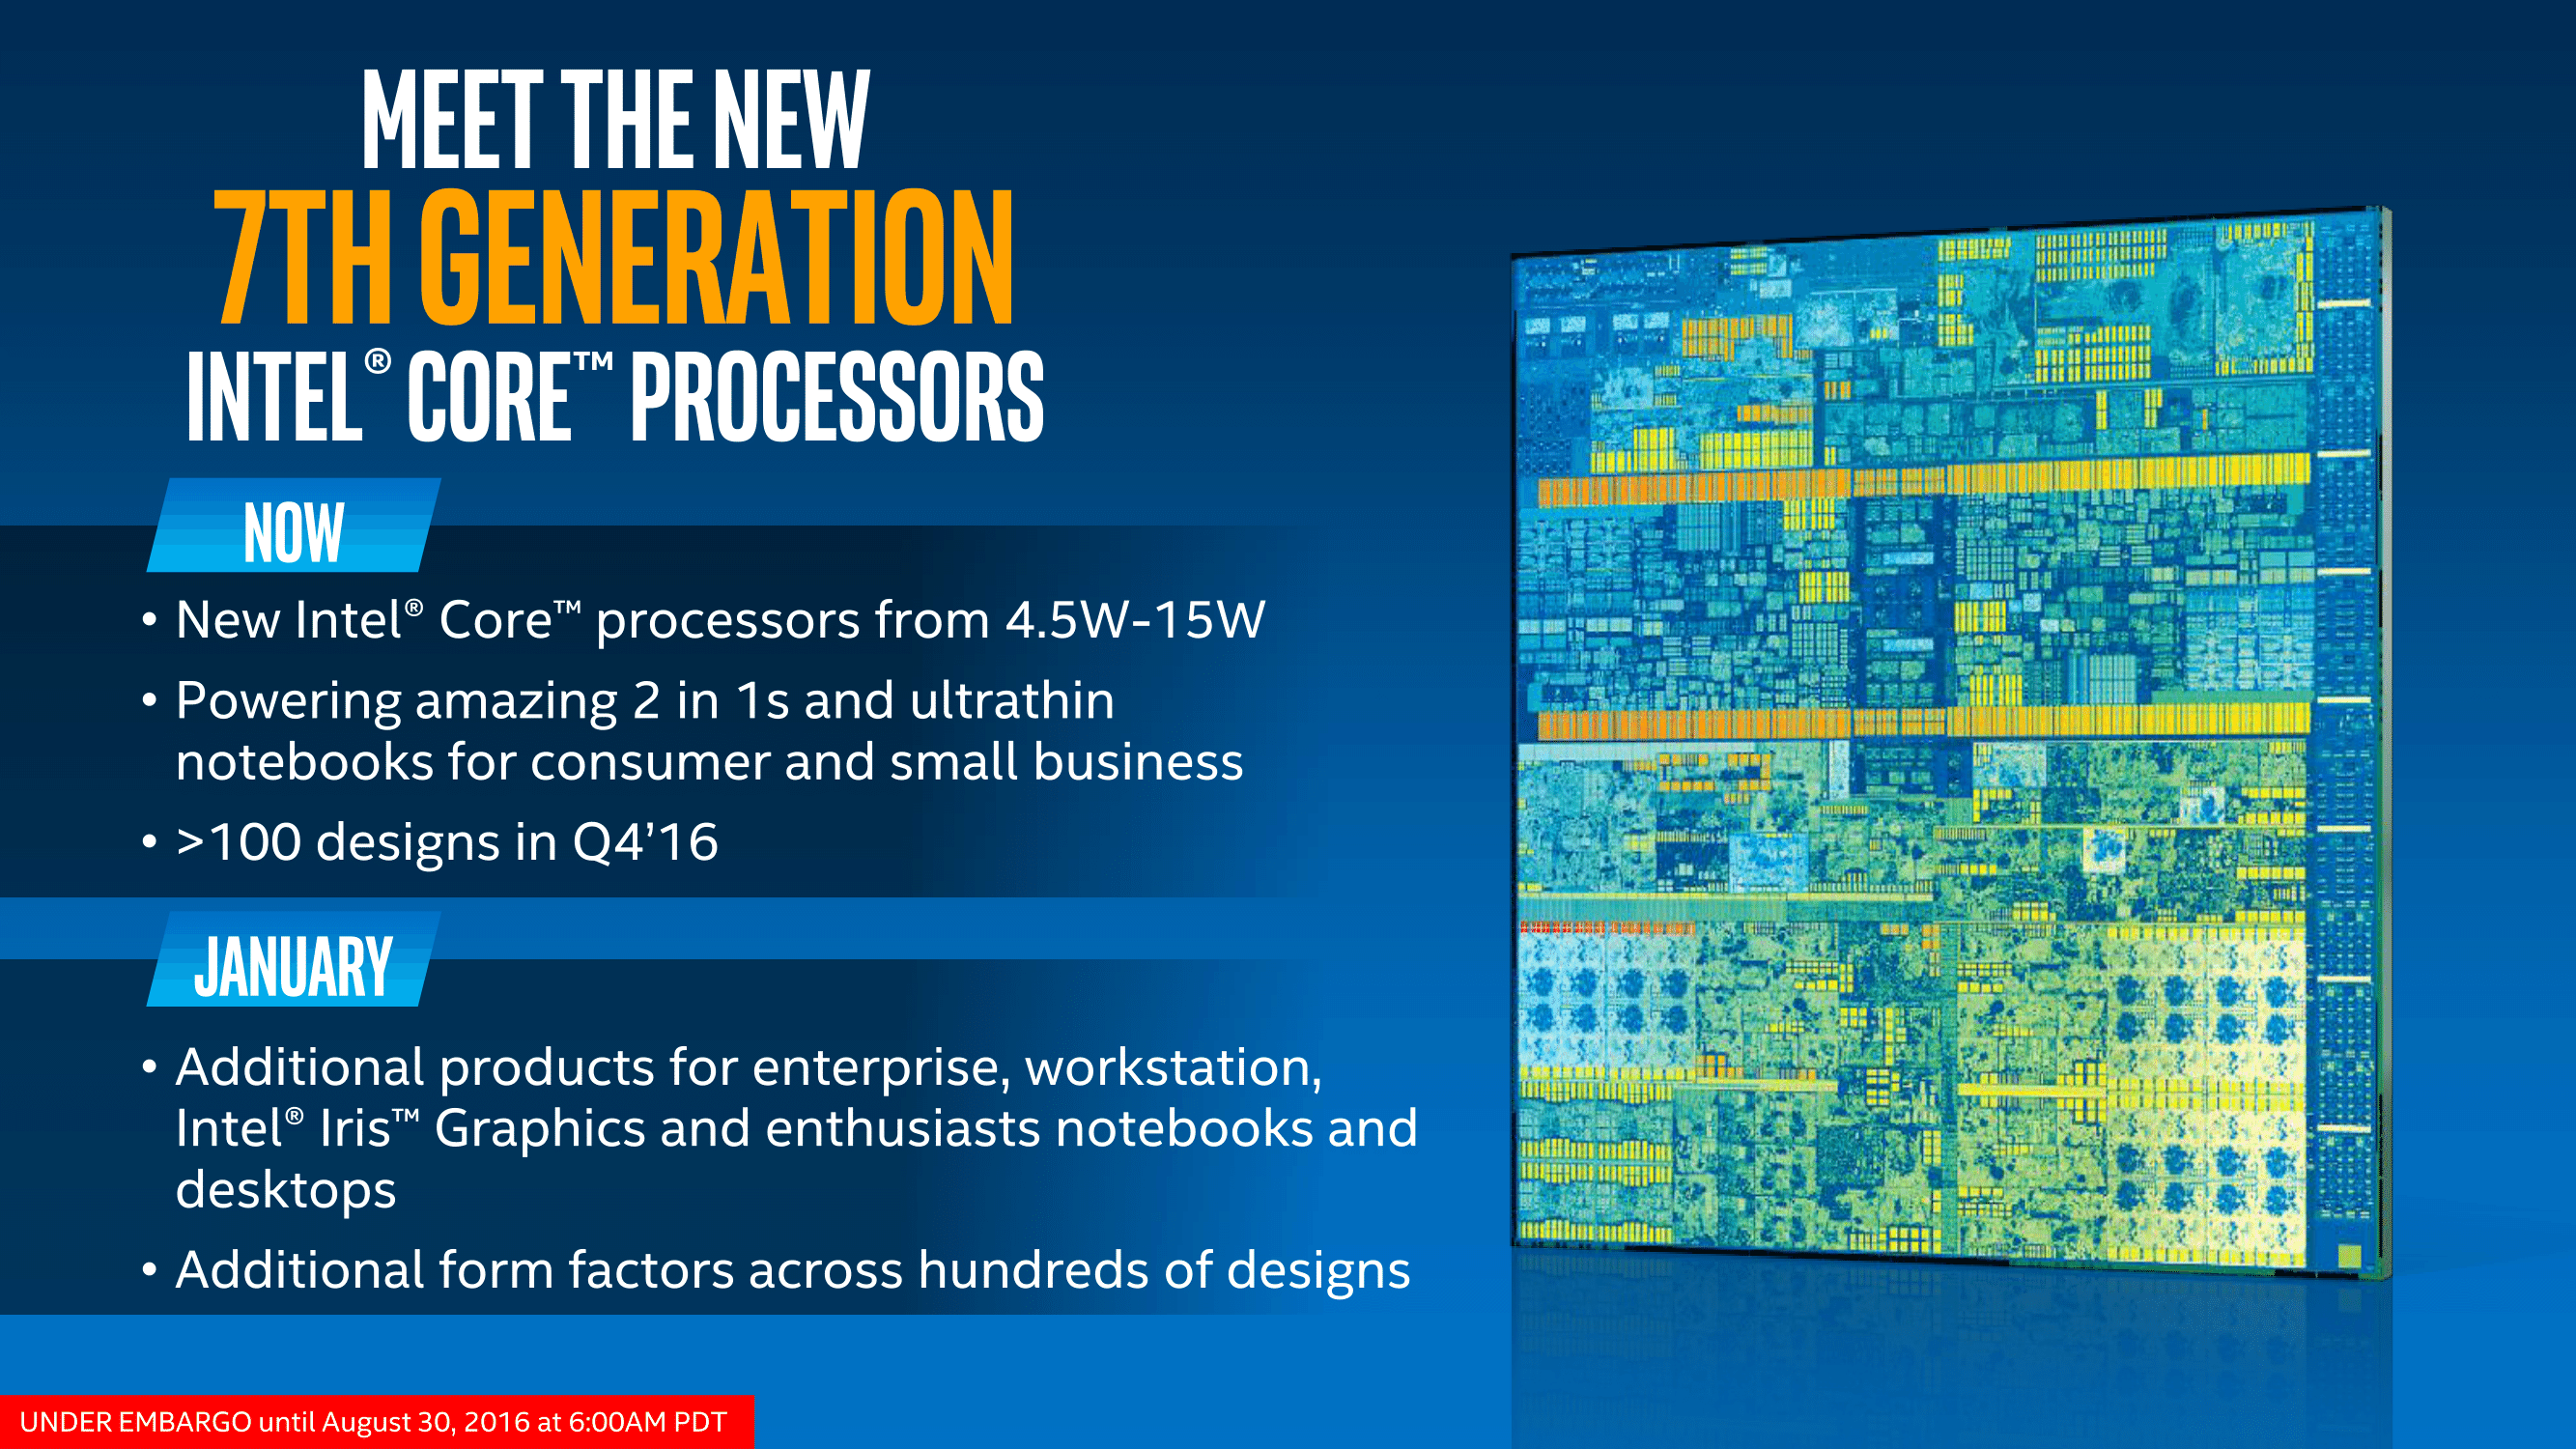 Intel Kaby Lake 7th Generation Core Processor